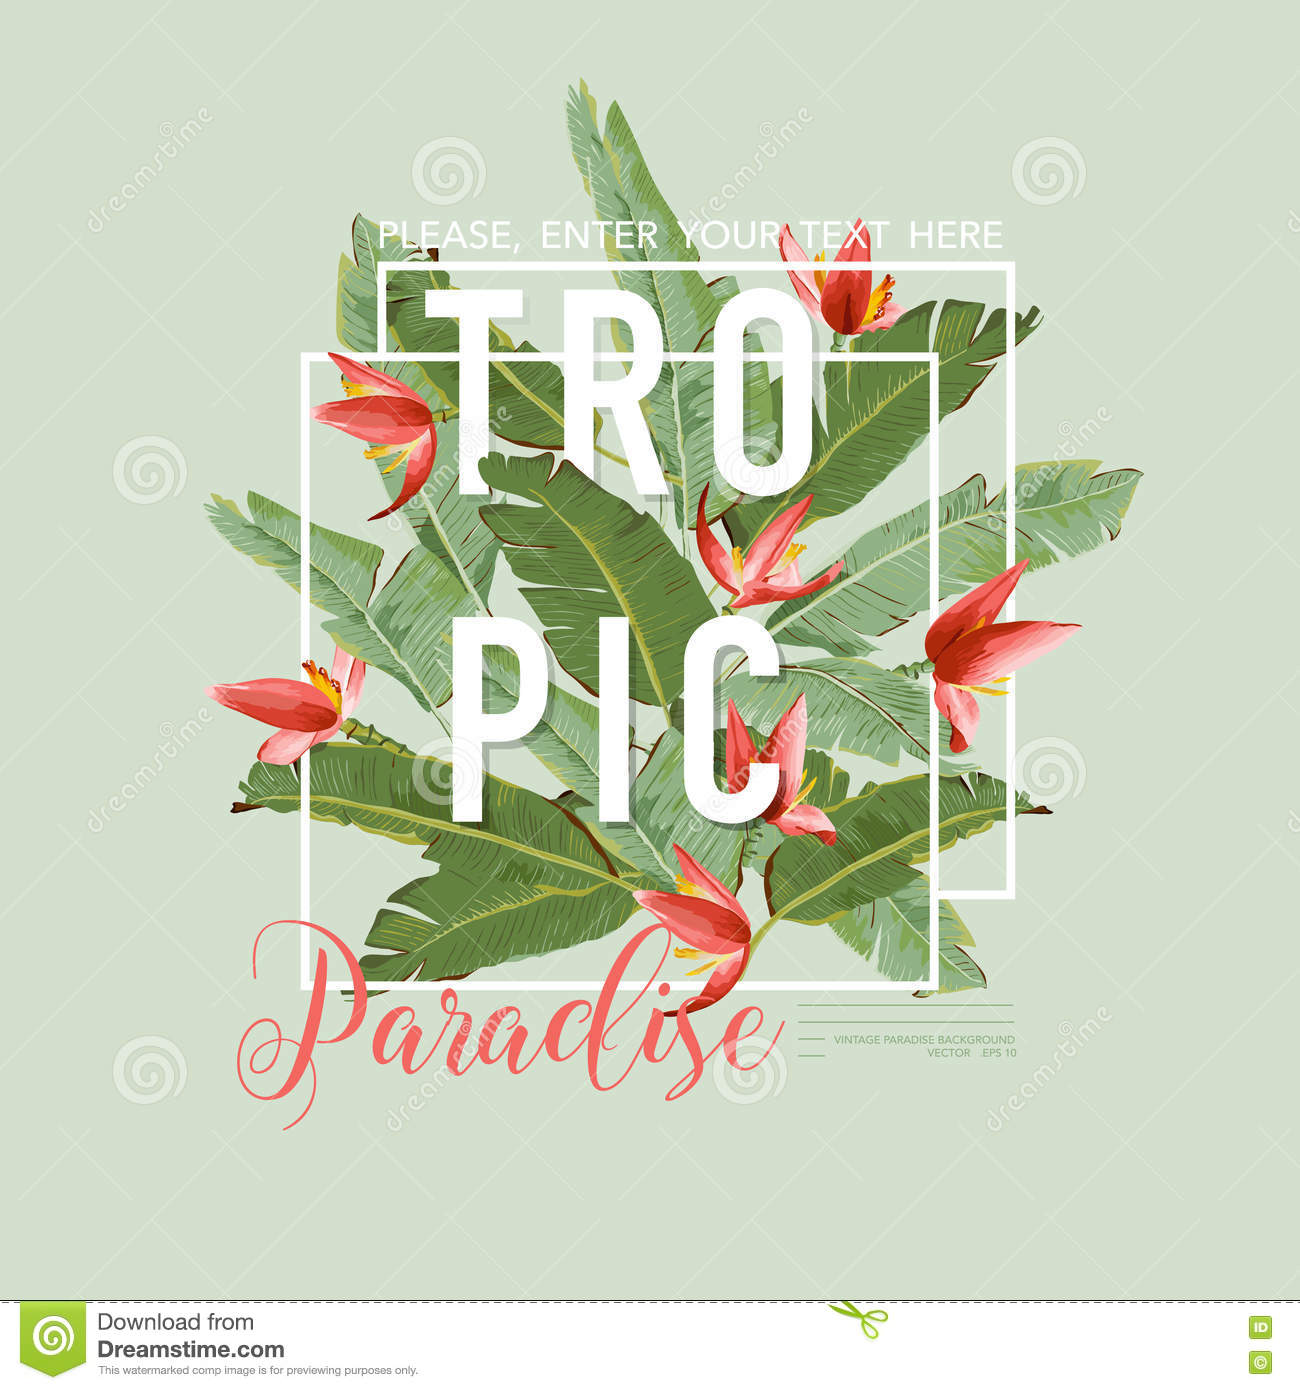 Tropical Bird And Flowers Graphic Design For T Shirt